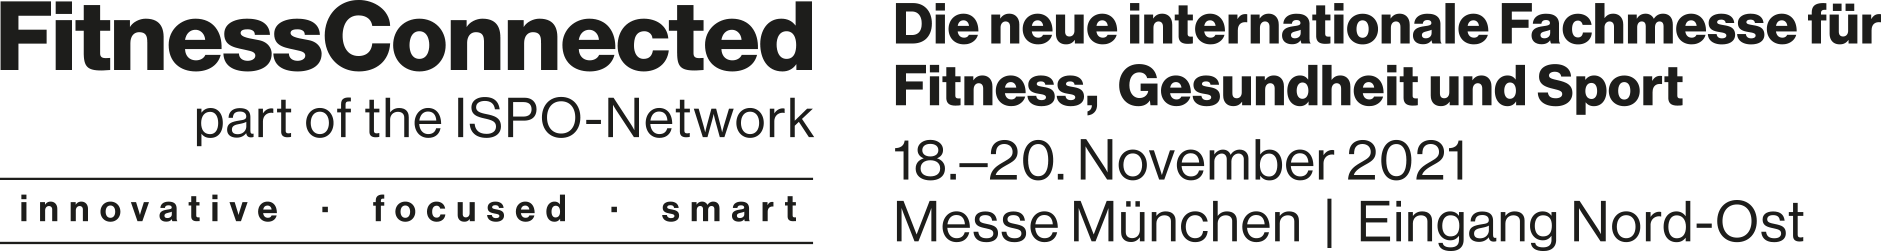 FitnessConnected